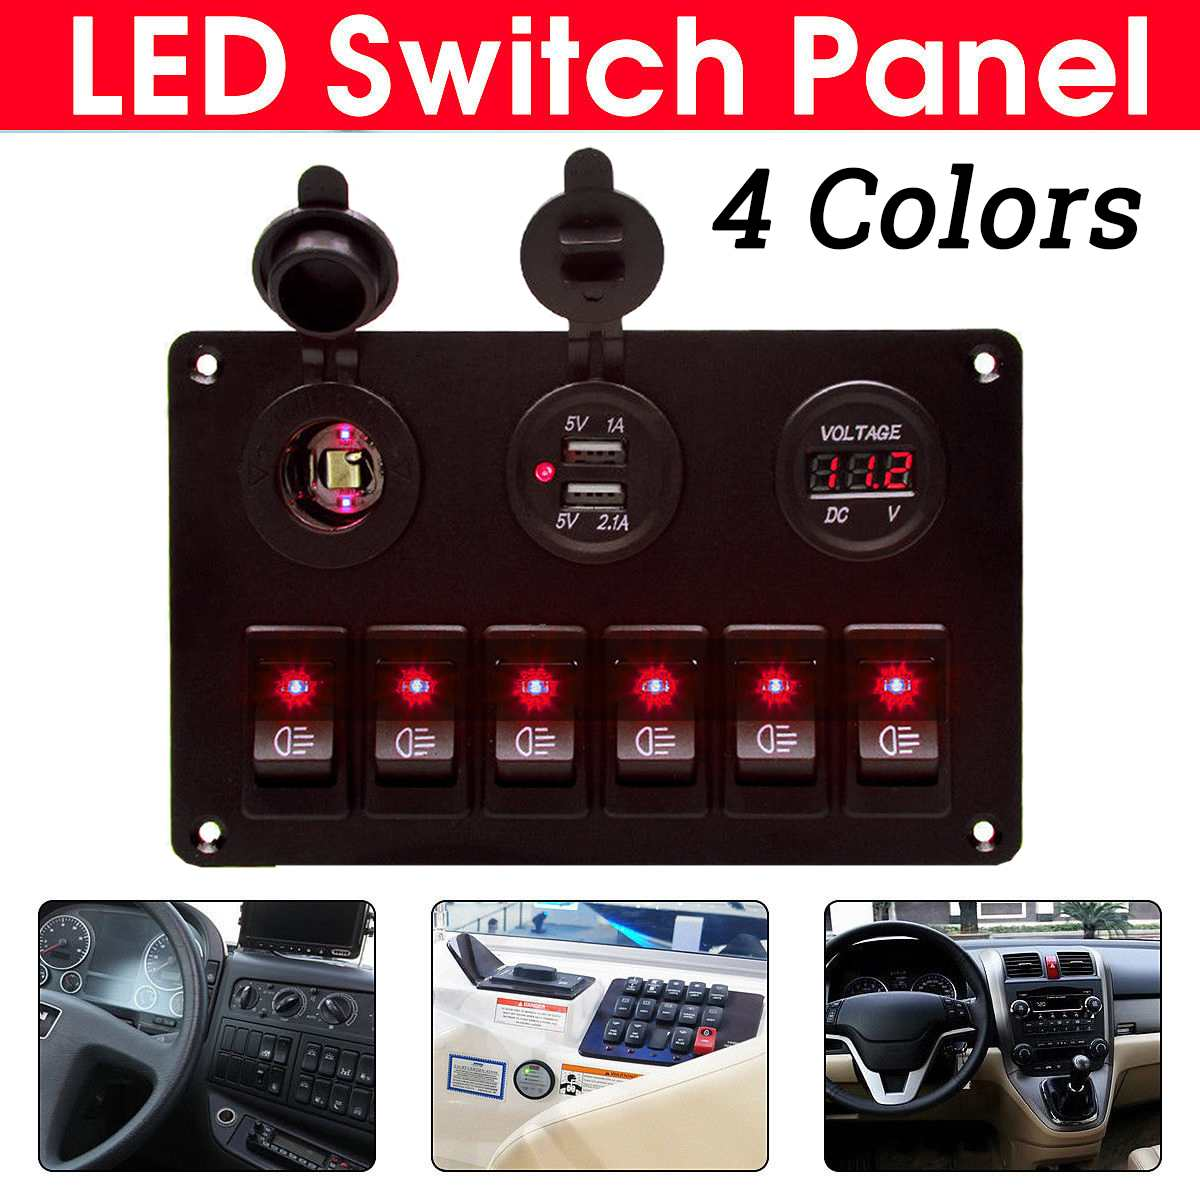 Rocker Switch Panel 6 Gang Led Display Voltage Dual USB Charging Ports Switch Universal for 12V 24V Car Yacht Boat Caravan